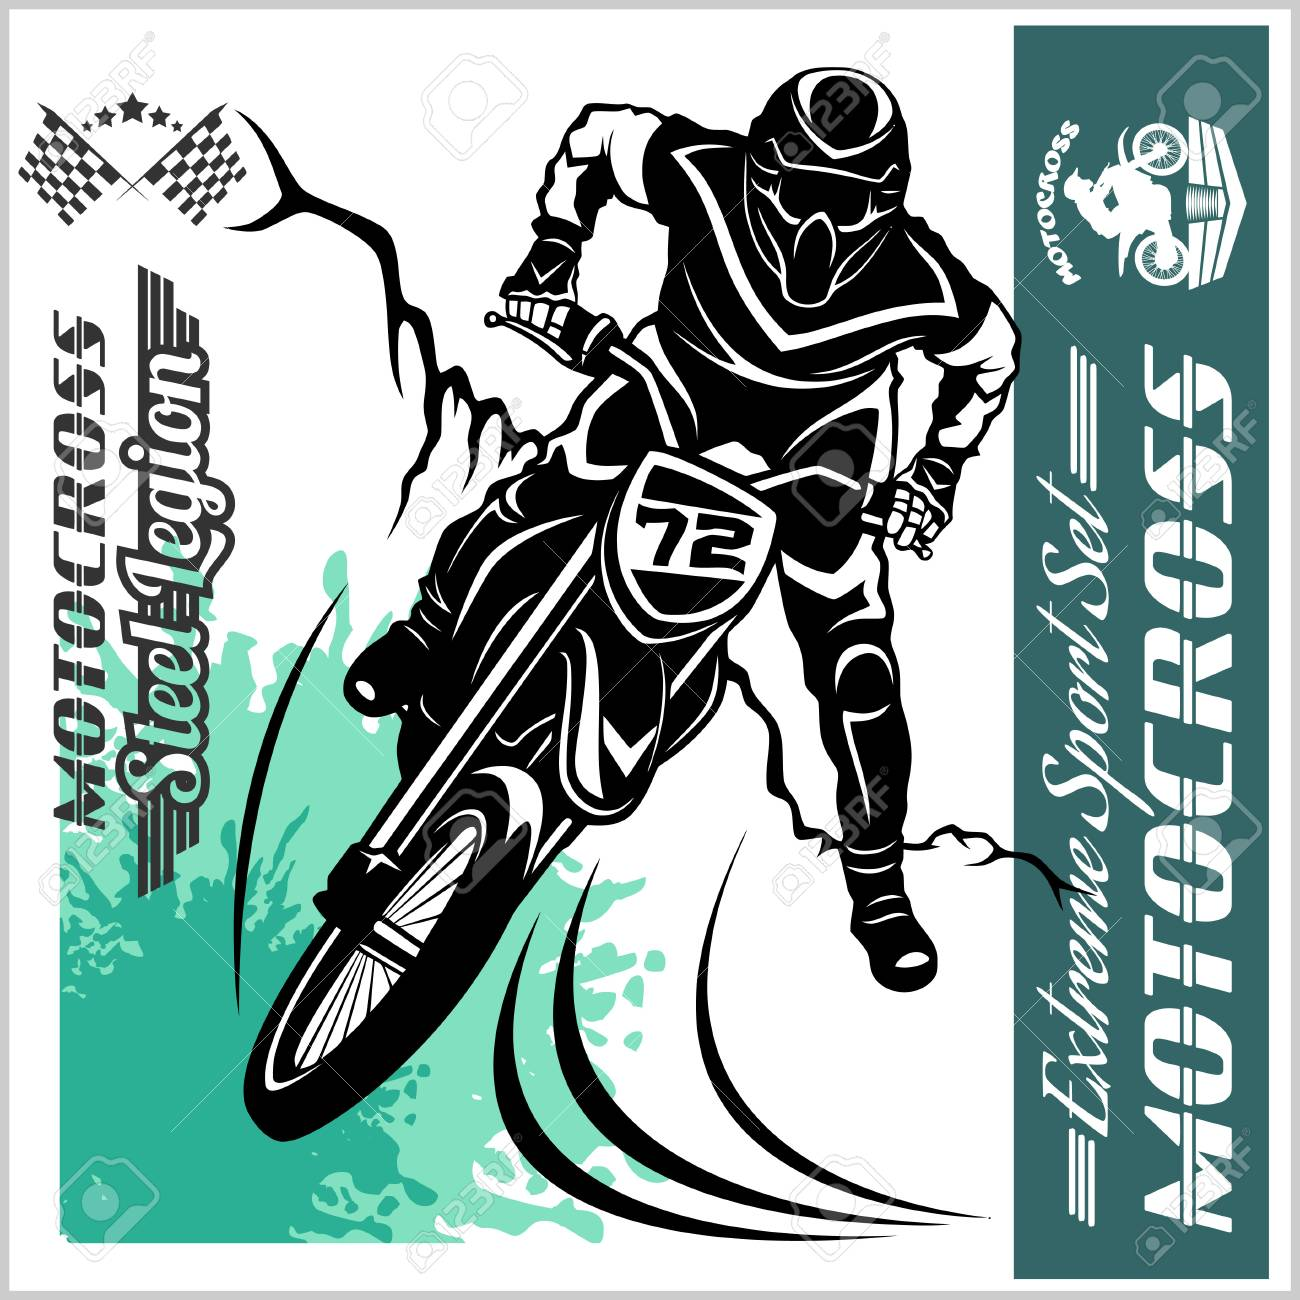 Motocross Rider Vector Emblem And Logos Royalty Free Cliparts Vectors And Stock Illustration Image 85245061